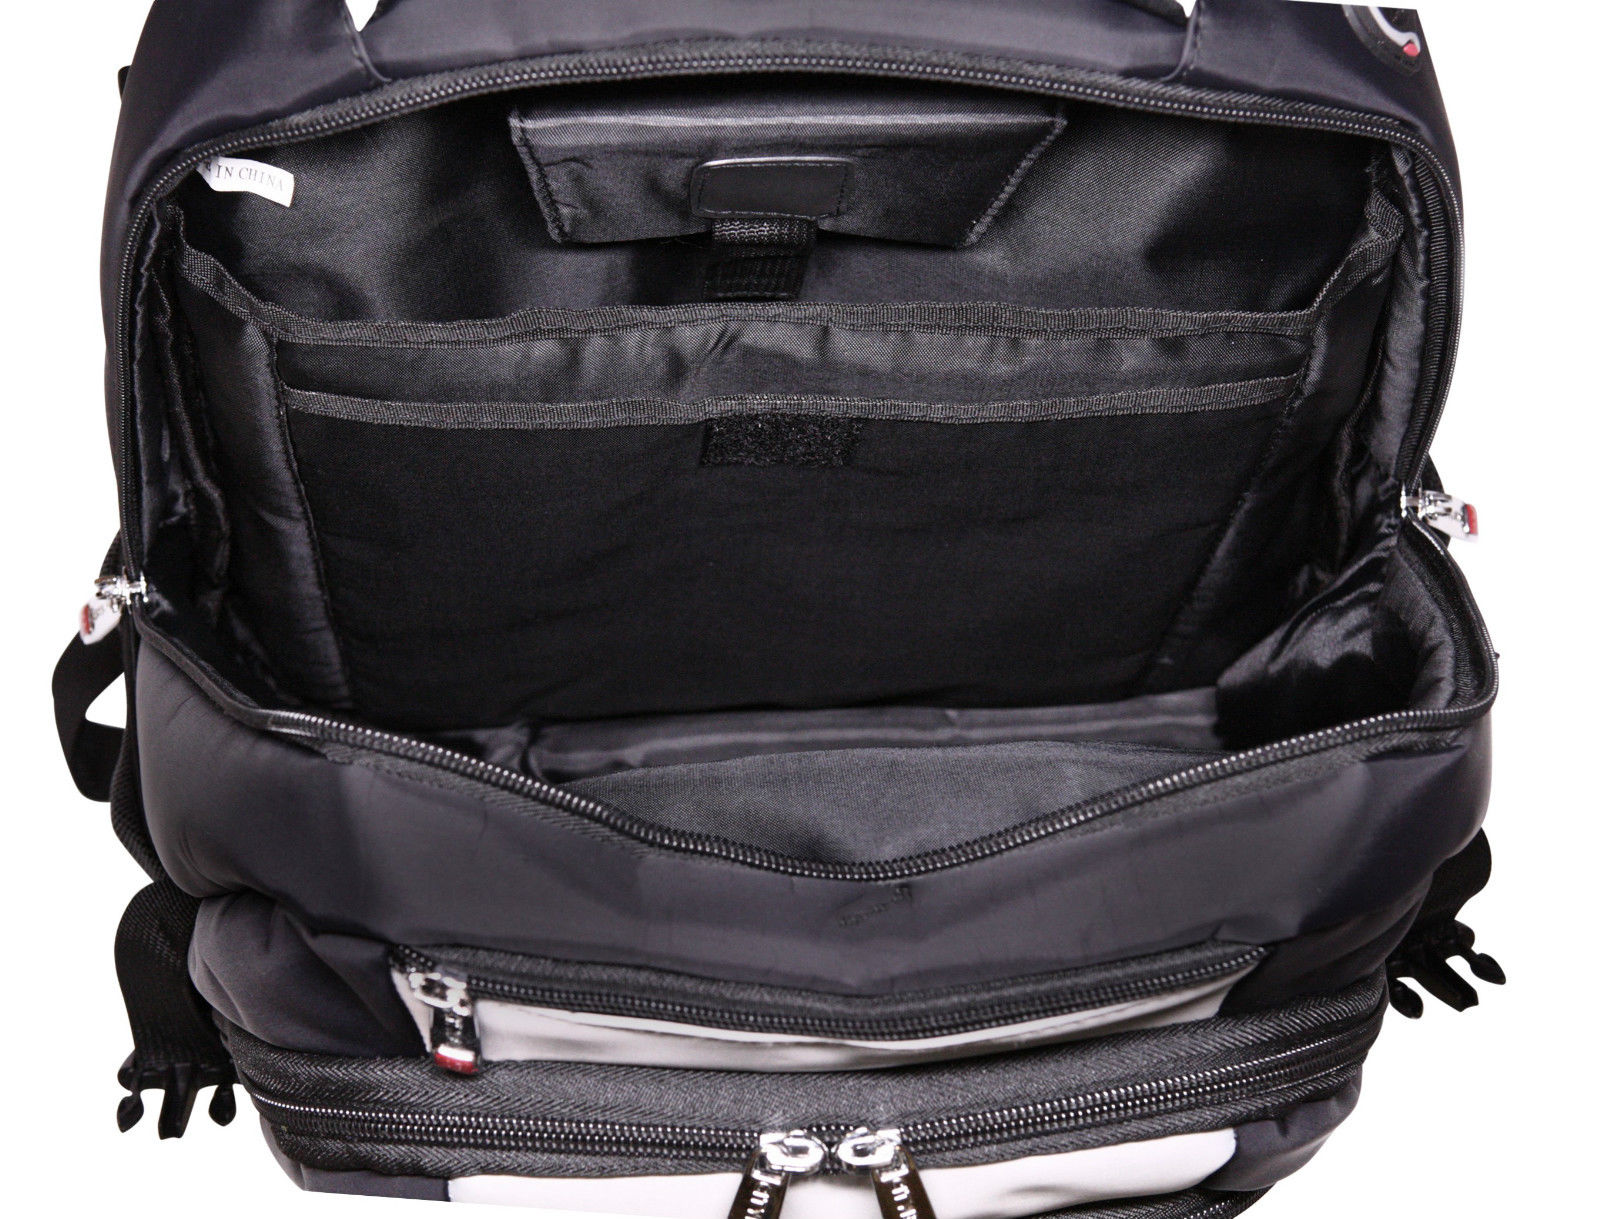 bc93eac6f146 City Bag Laptop Backpack Mens 15.6 Inch Business Bag Commuter Water ...